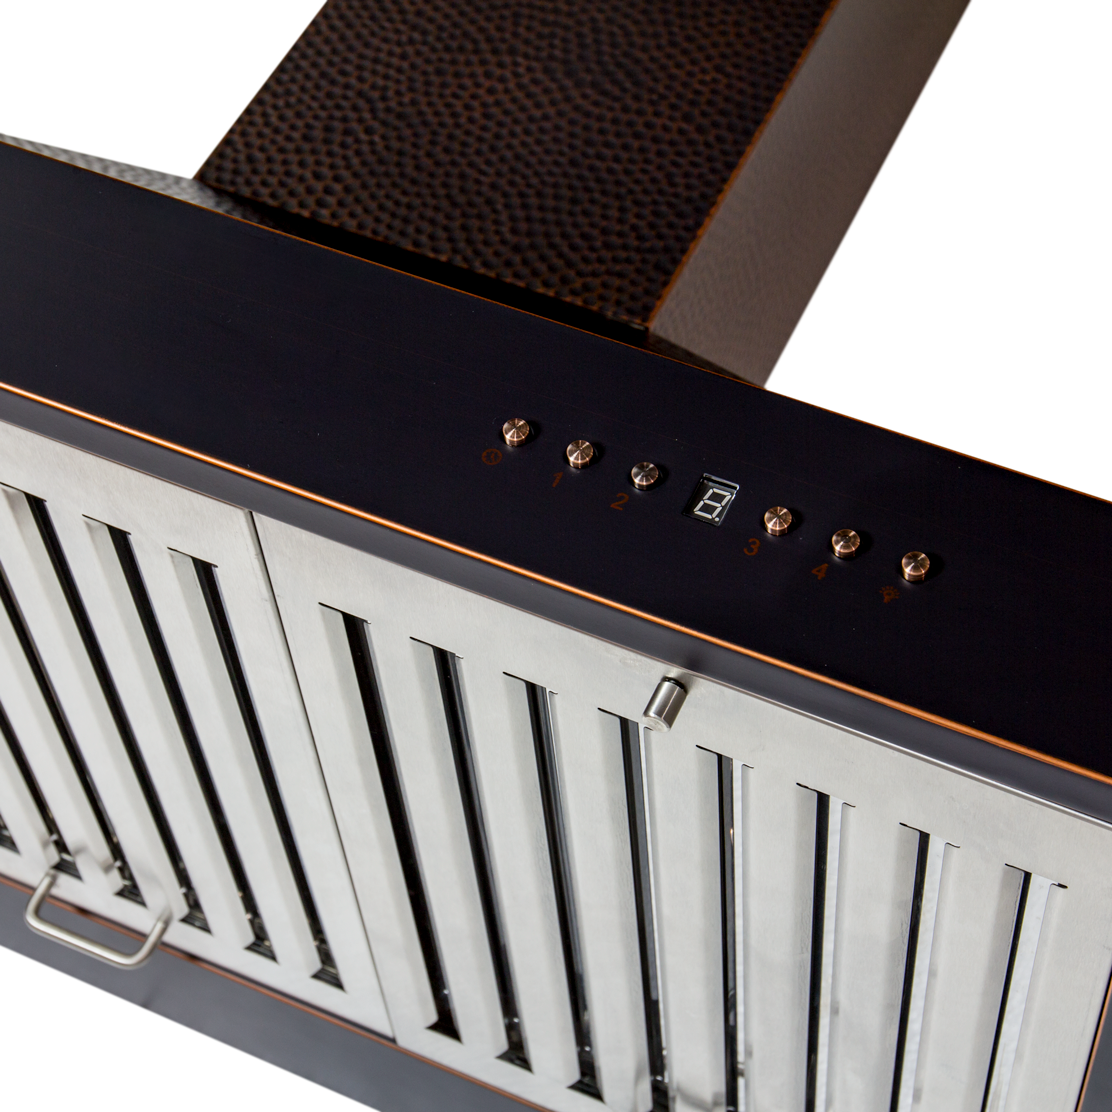 zline-copper-wall-mounted-range-hood-KB2-HBXXX-detail.png